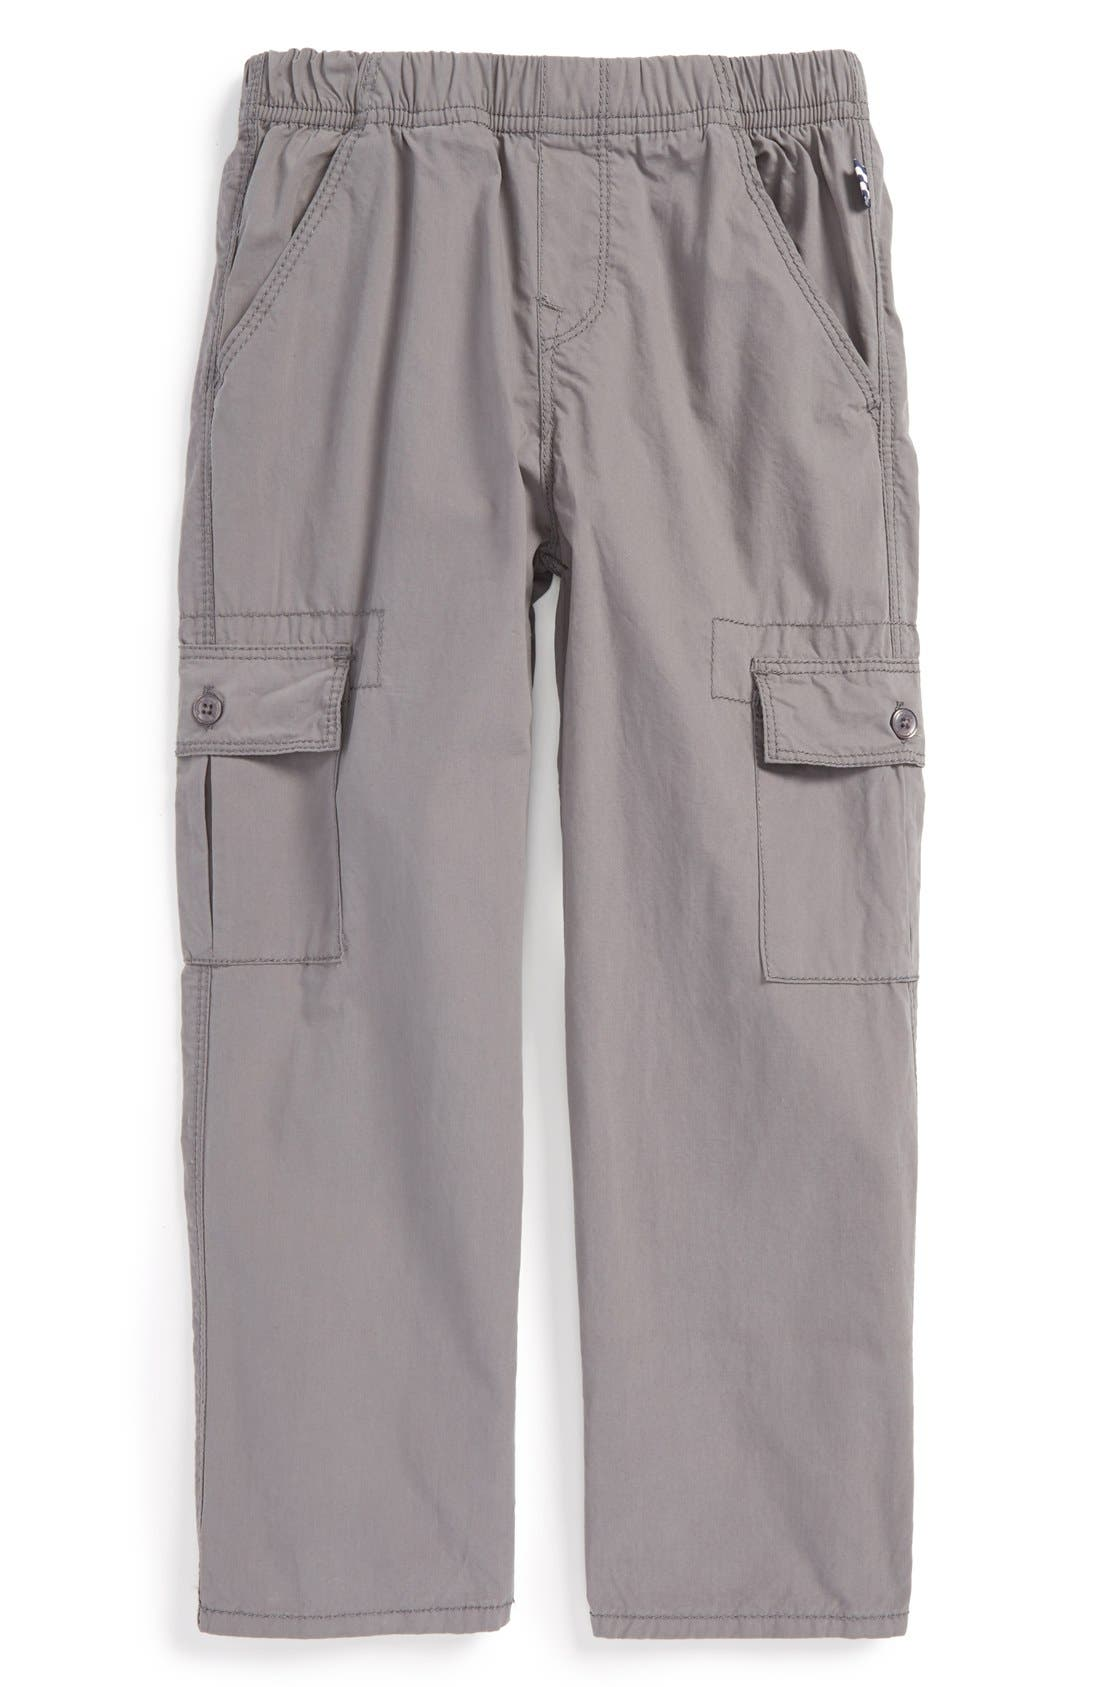 Main Image - Splendid Cargo Pants (Toddler Boys & Little Boys)